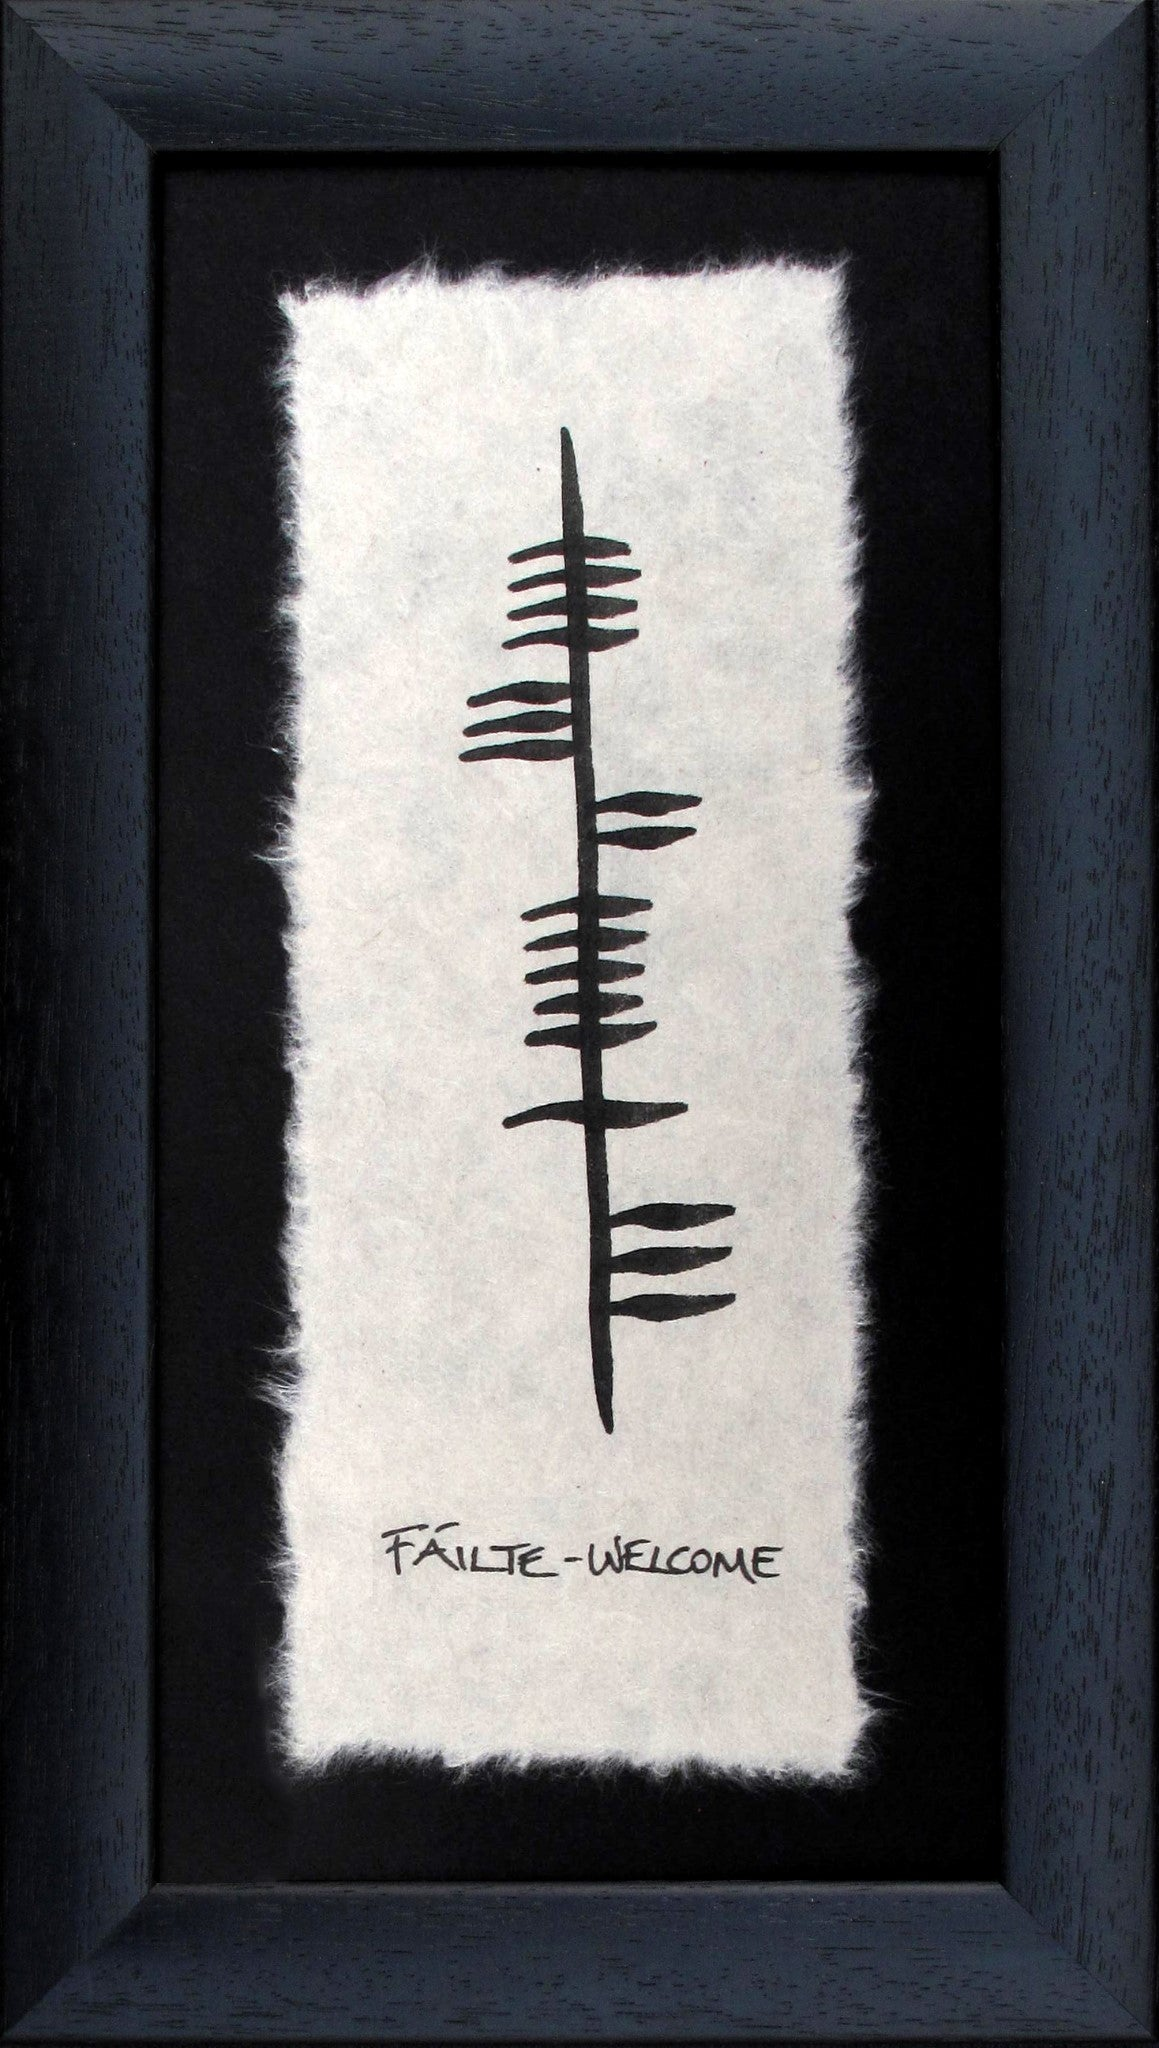 Ogham Wishes - Welcome, Faite